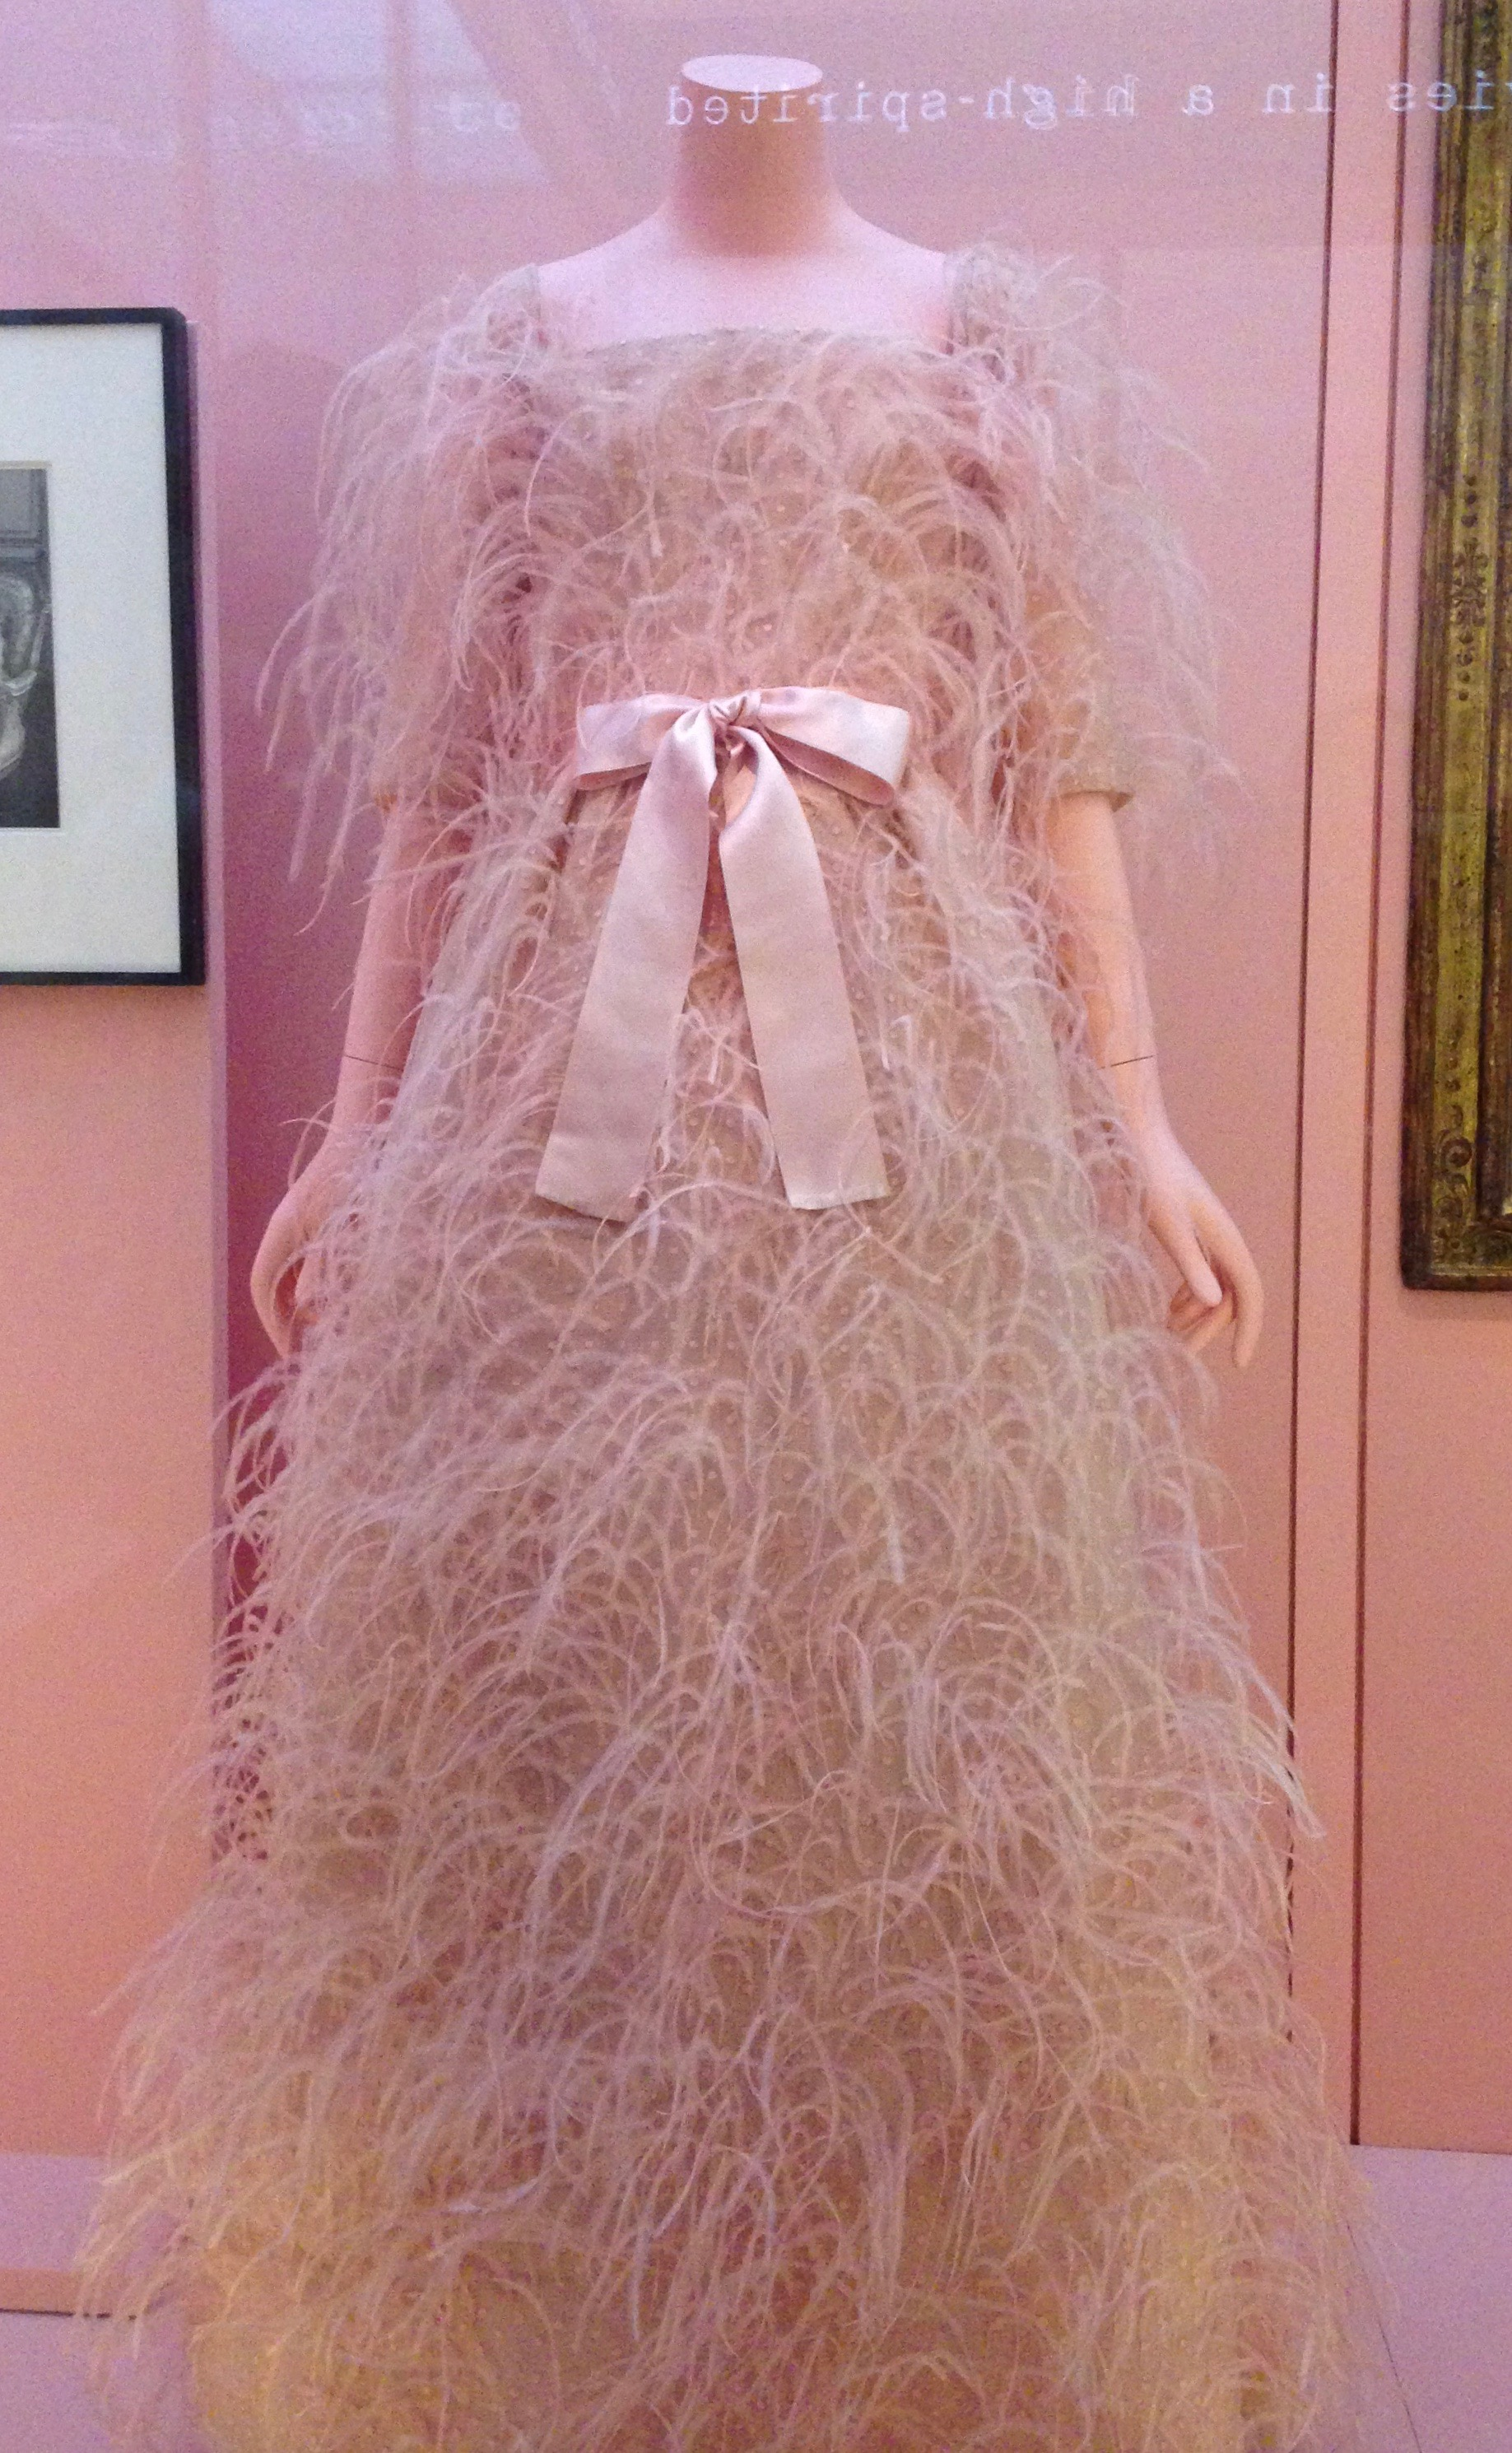 Cristobal Balenciaga, Evening Dress, autumn/winter 1965-66, dress of pink ostrich feathers and pink silk-thread dots; sash of pink silk satin